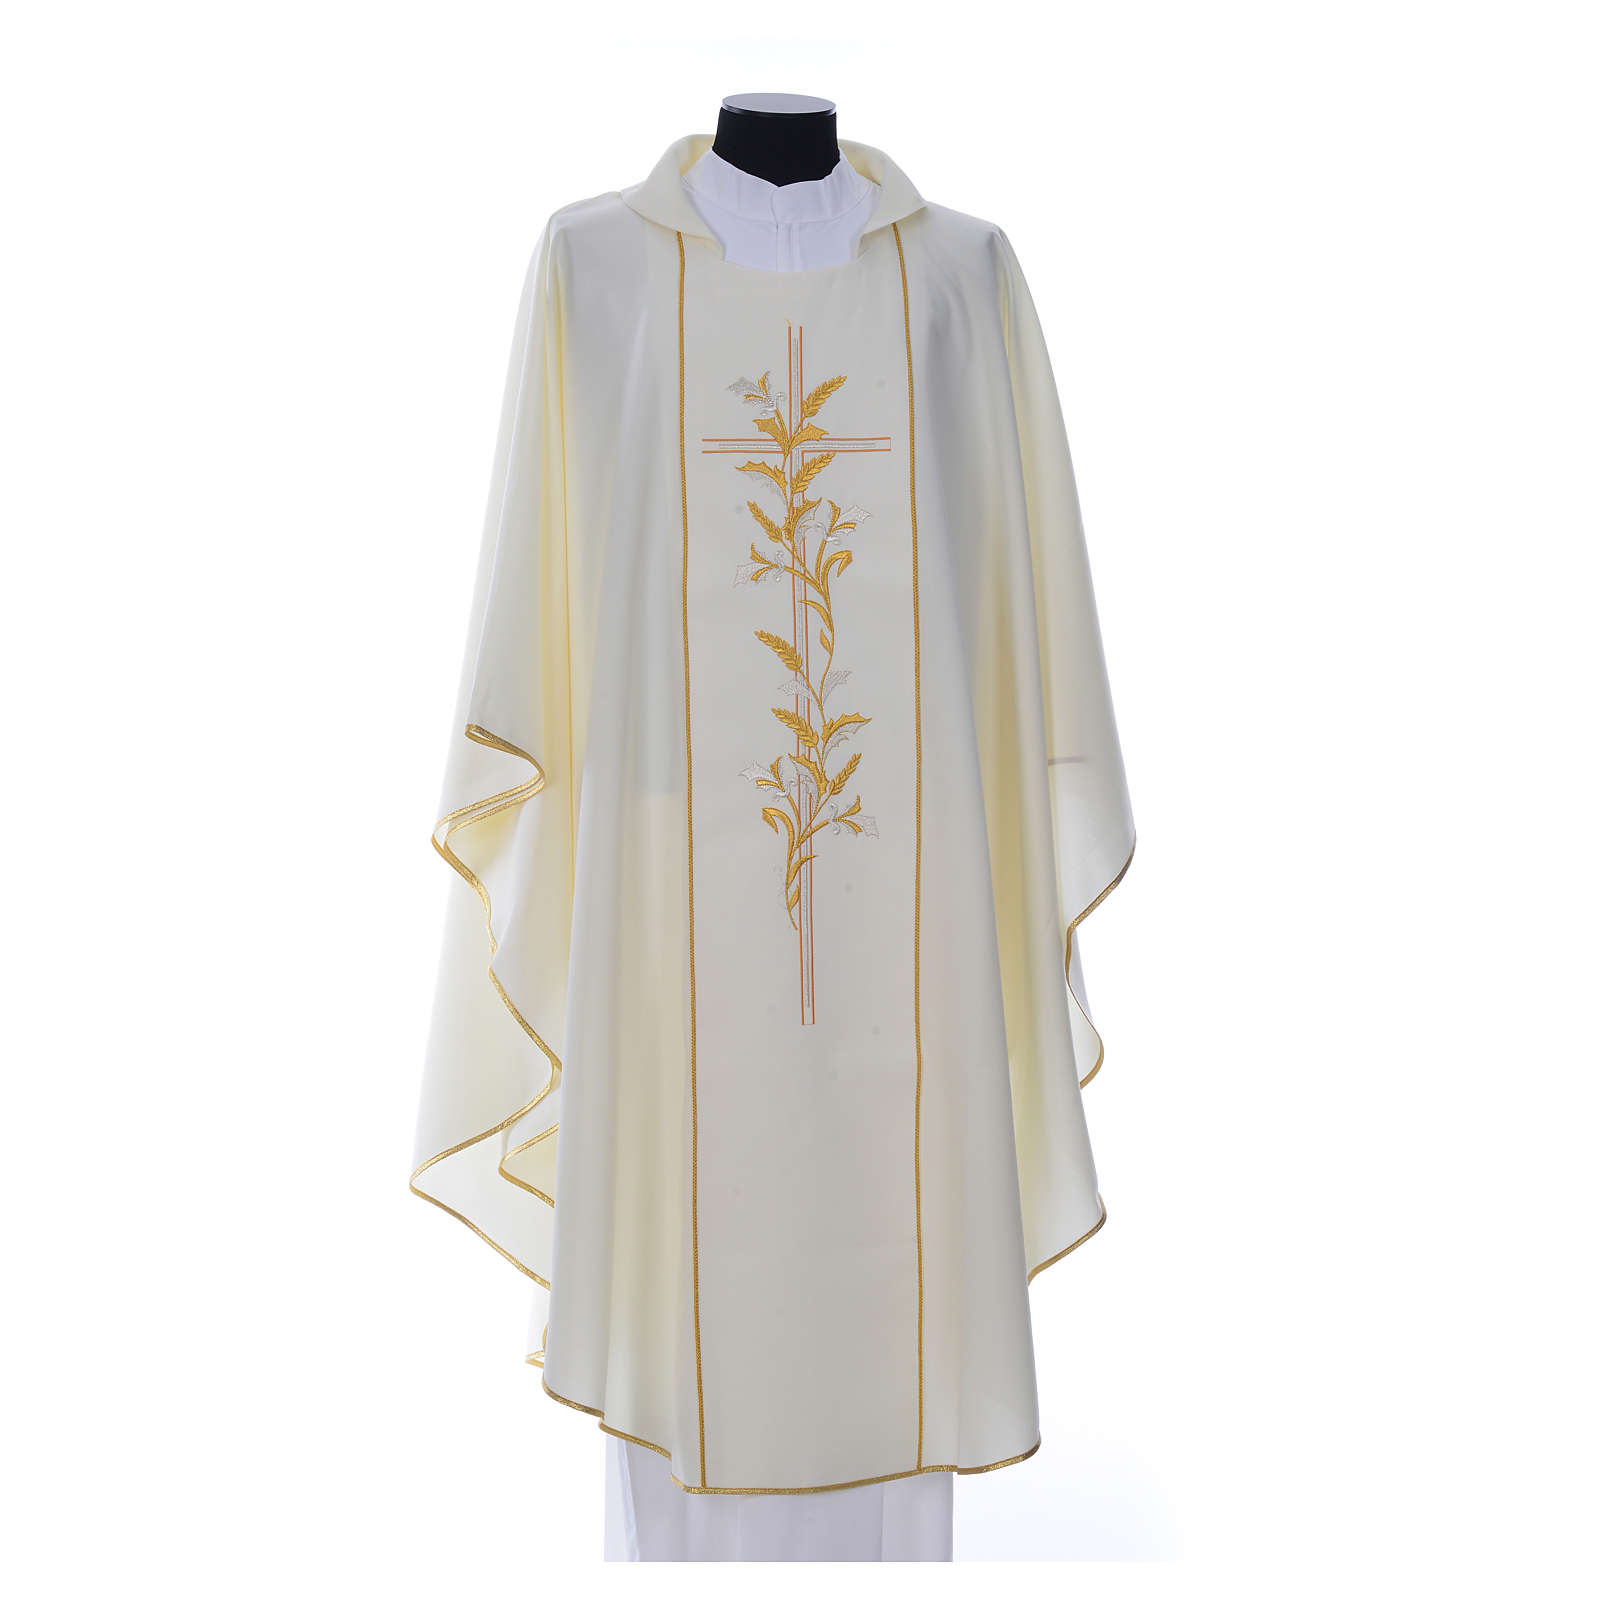 Catholic Priest Chasuble with Cross and Lily in 100% polyester 4